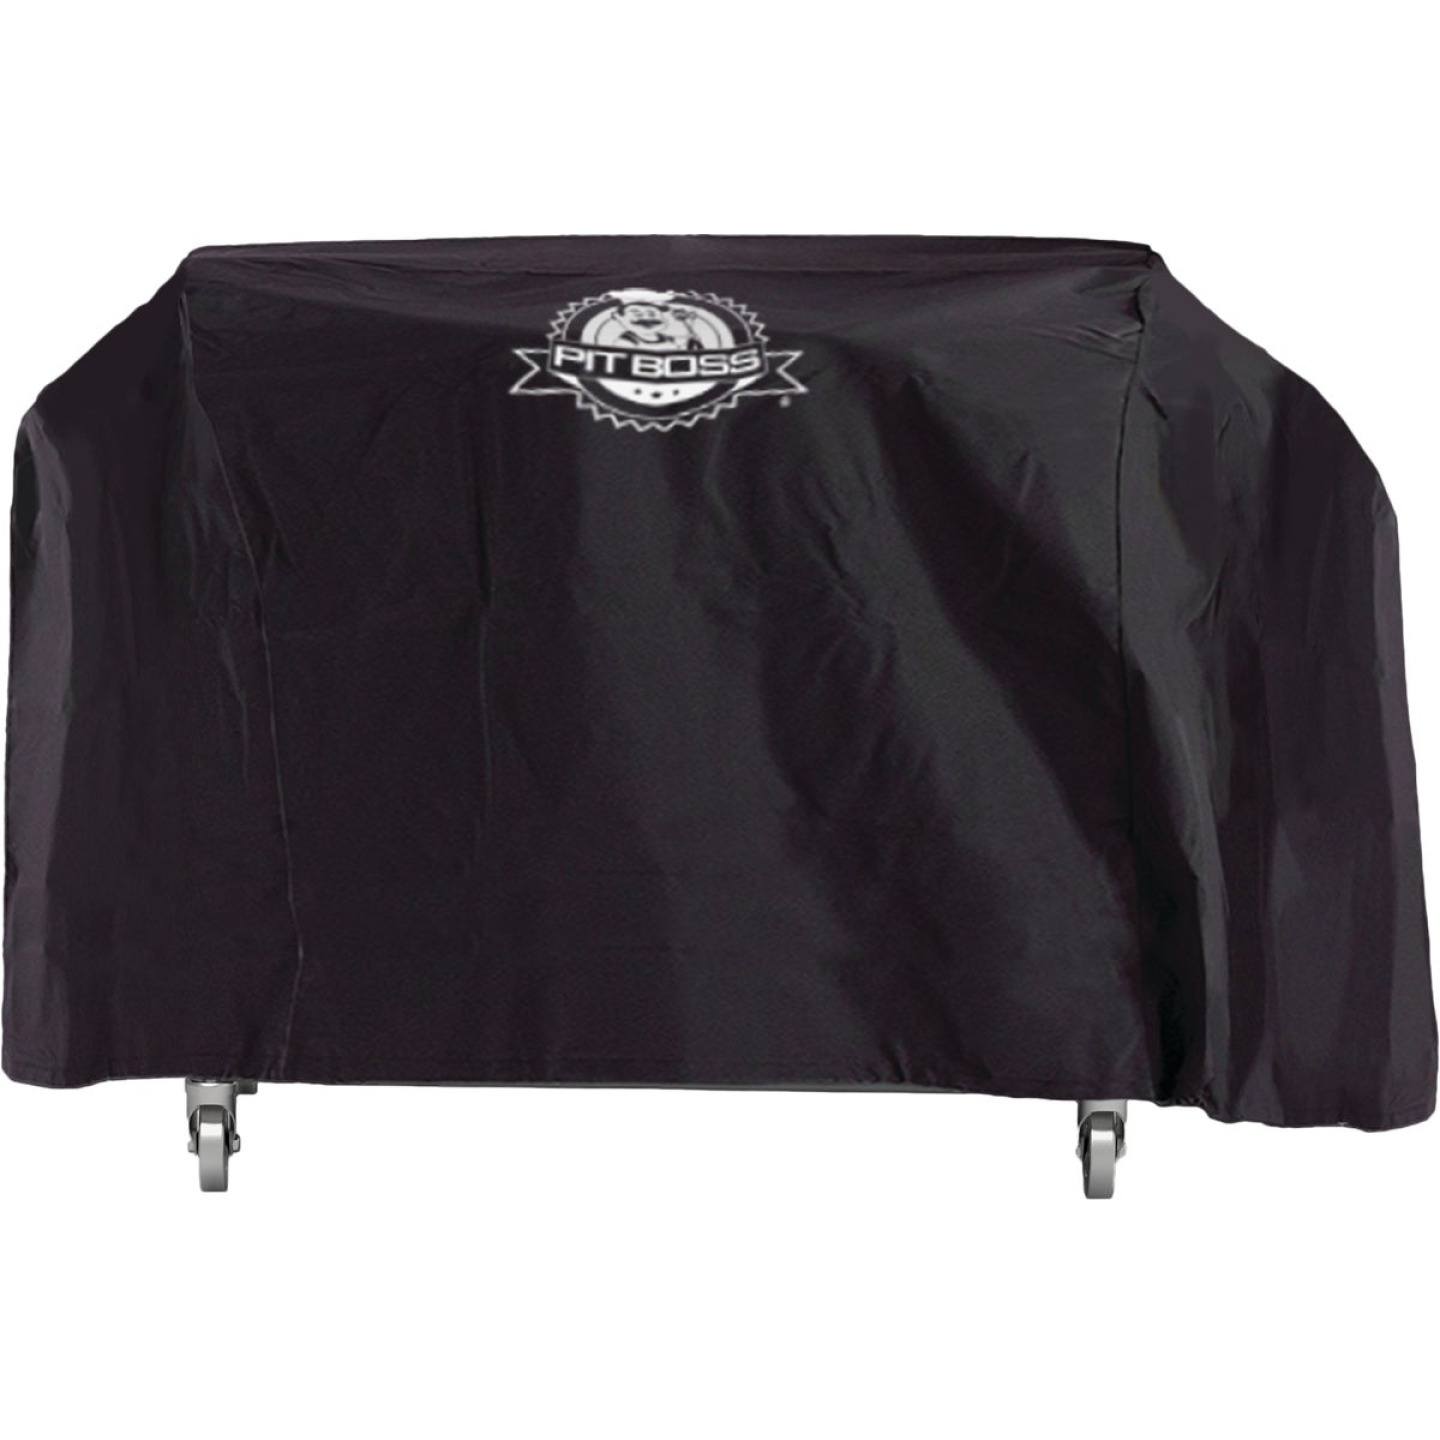 Pit Boss 77.2 In. 600D Polyester Deluxe Griddle Cover Image 1